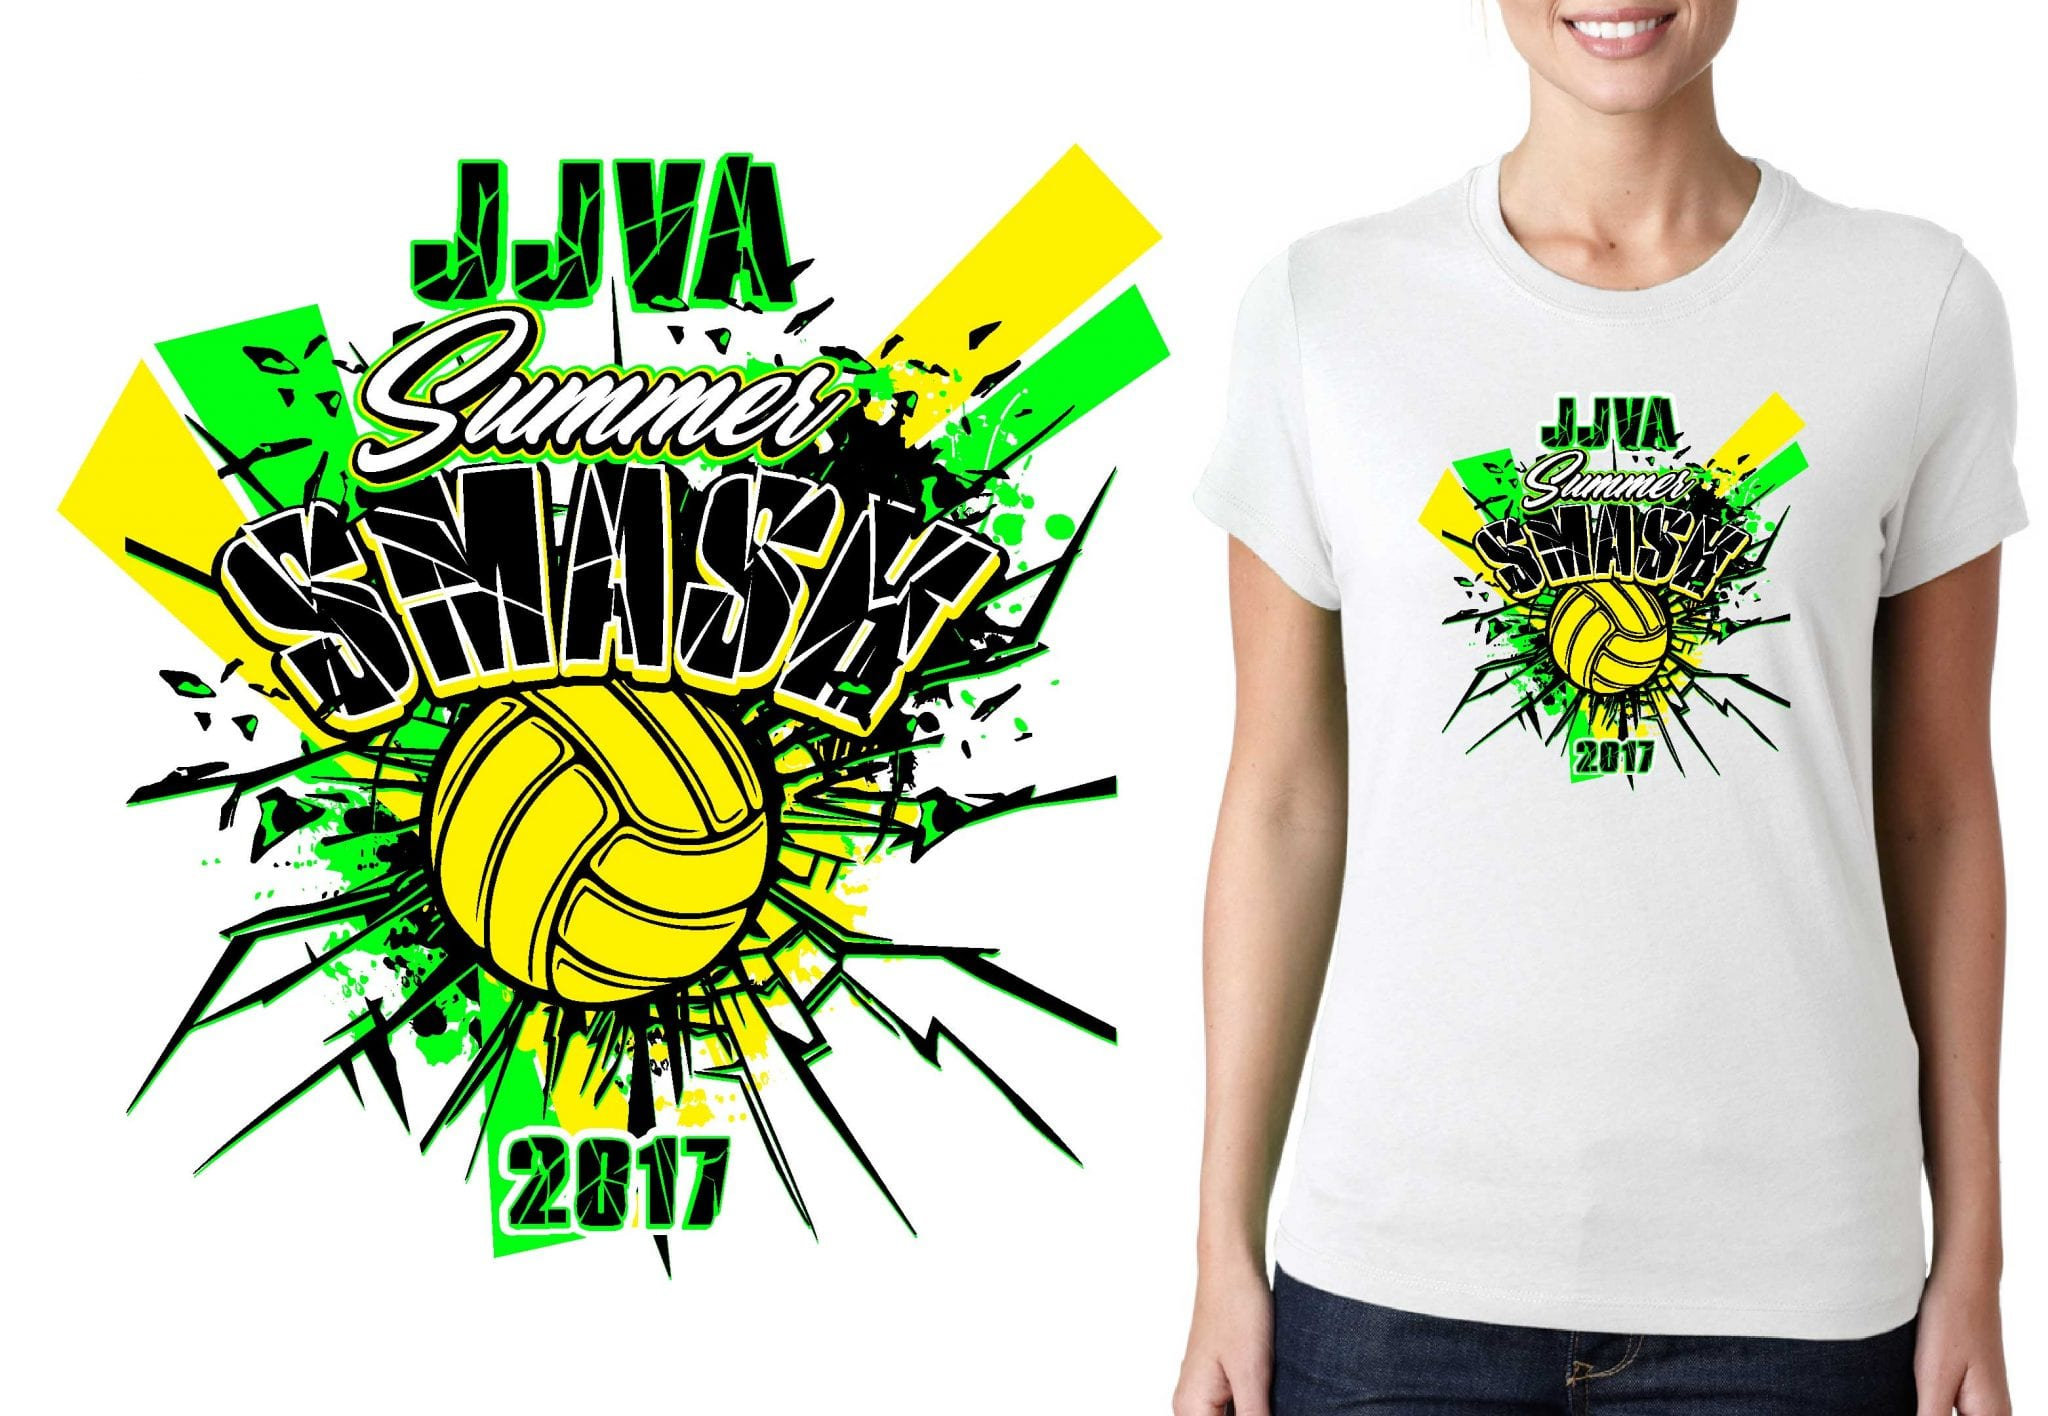 PRINT 2017 Summer Smash vector logo design for t-shirt volleyball urartstudio.com